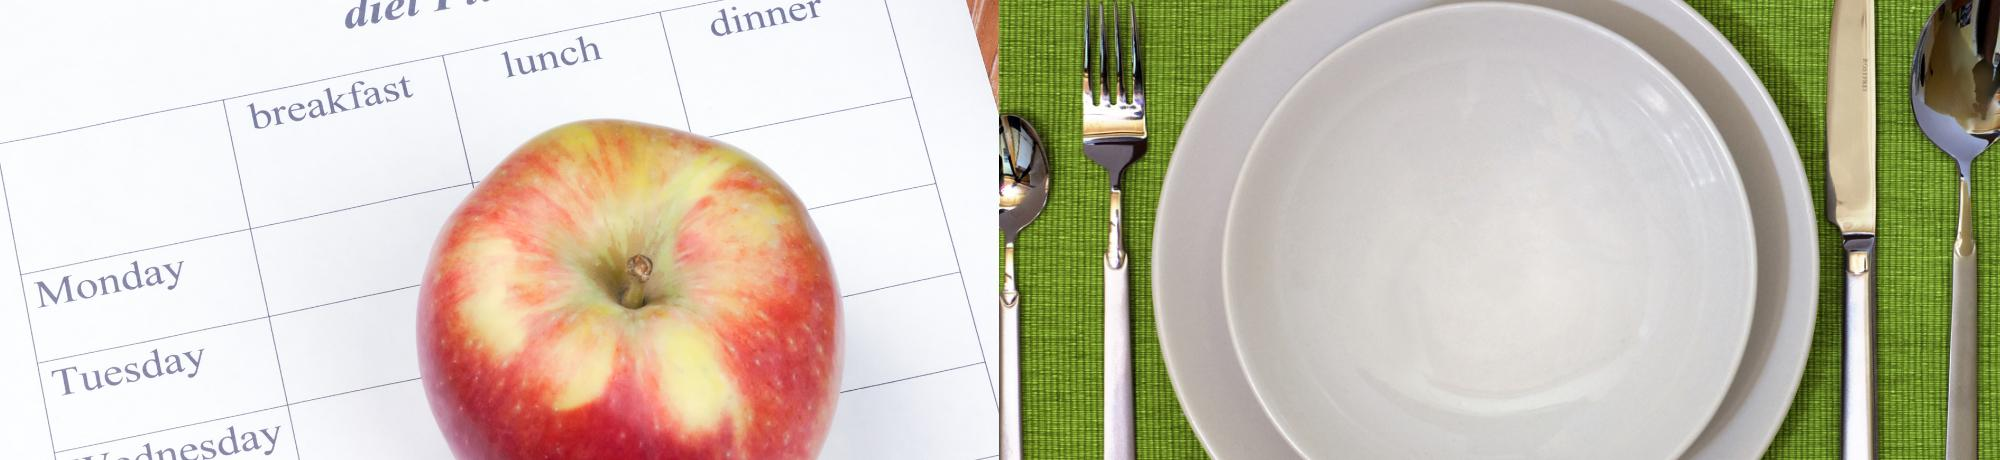 Meal plan sheet and empty dish